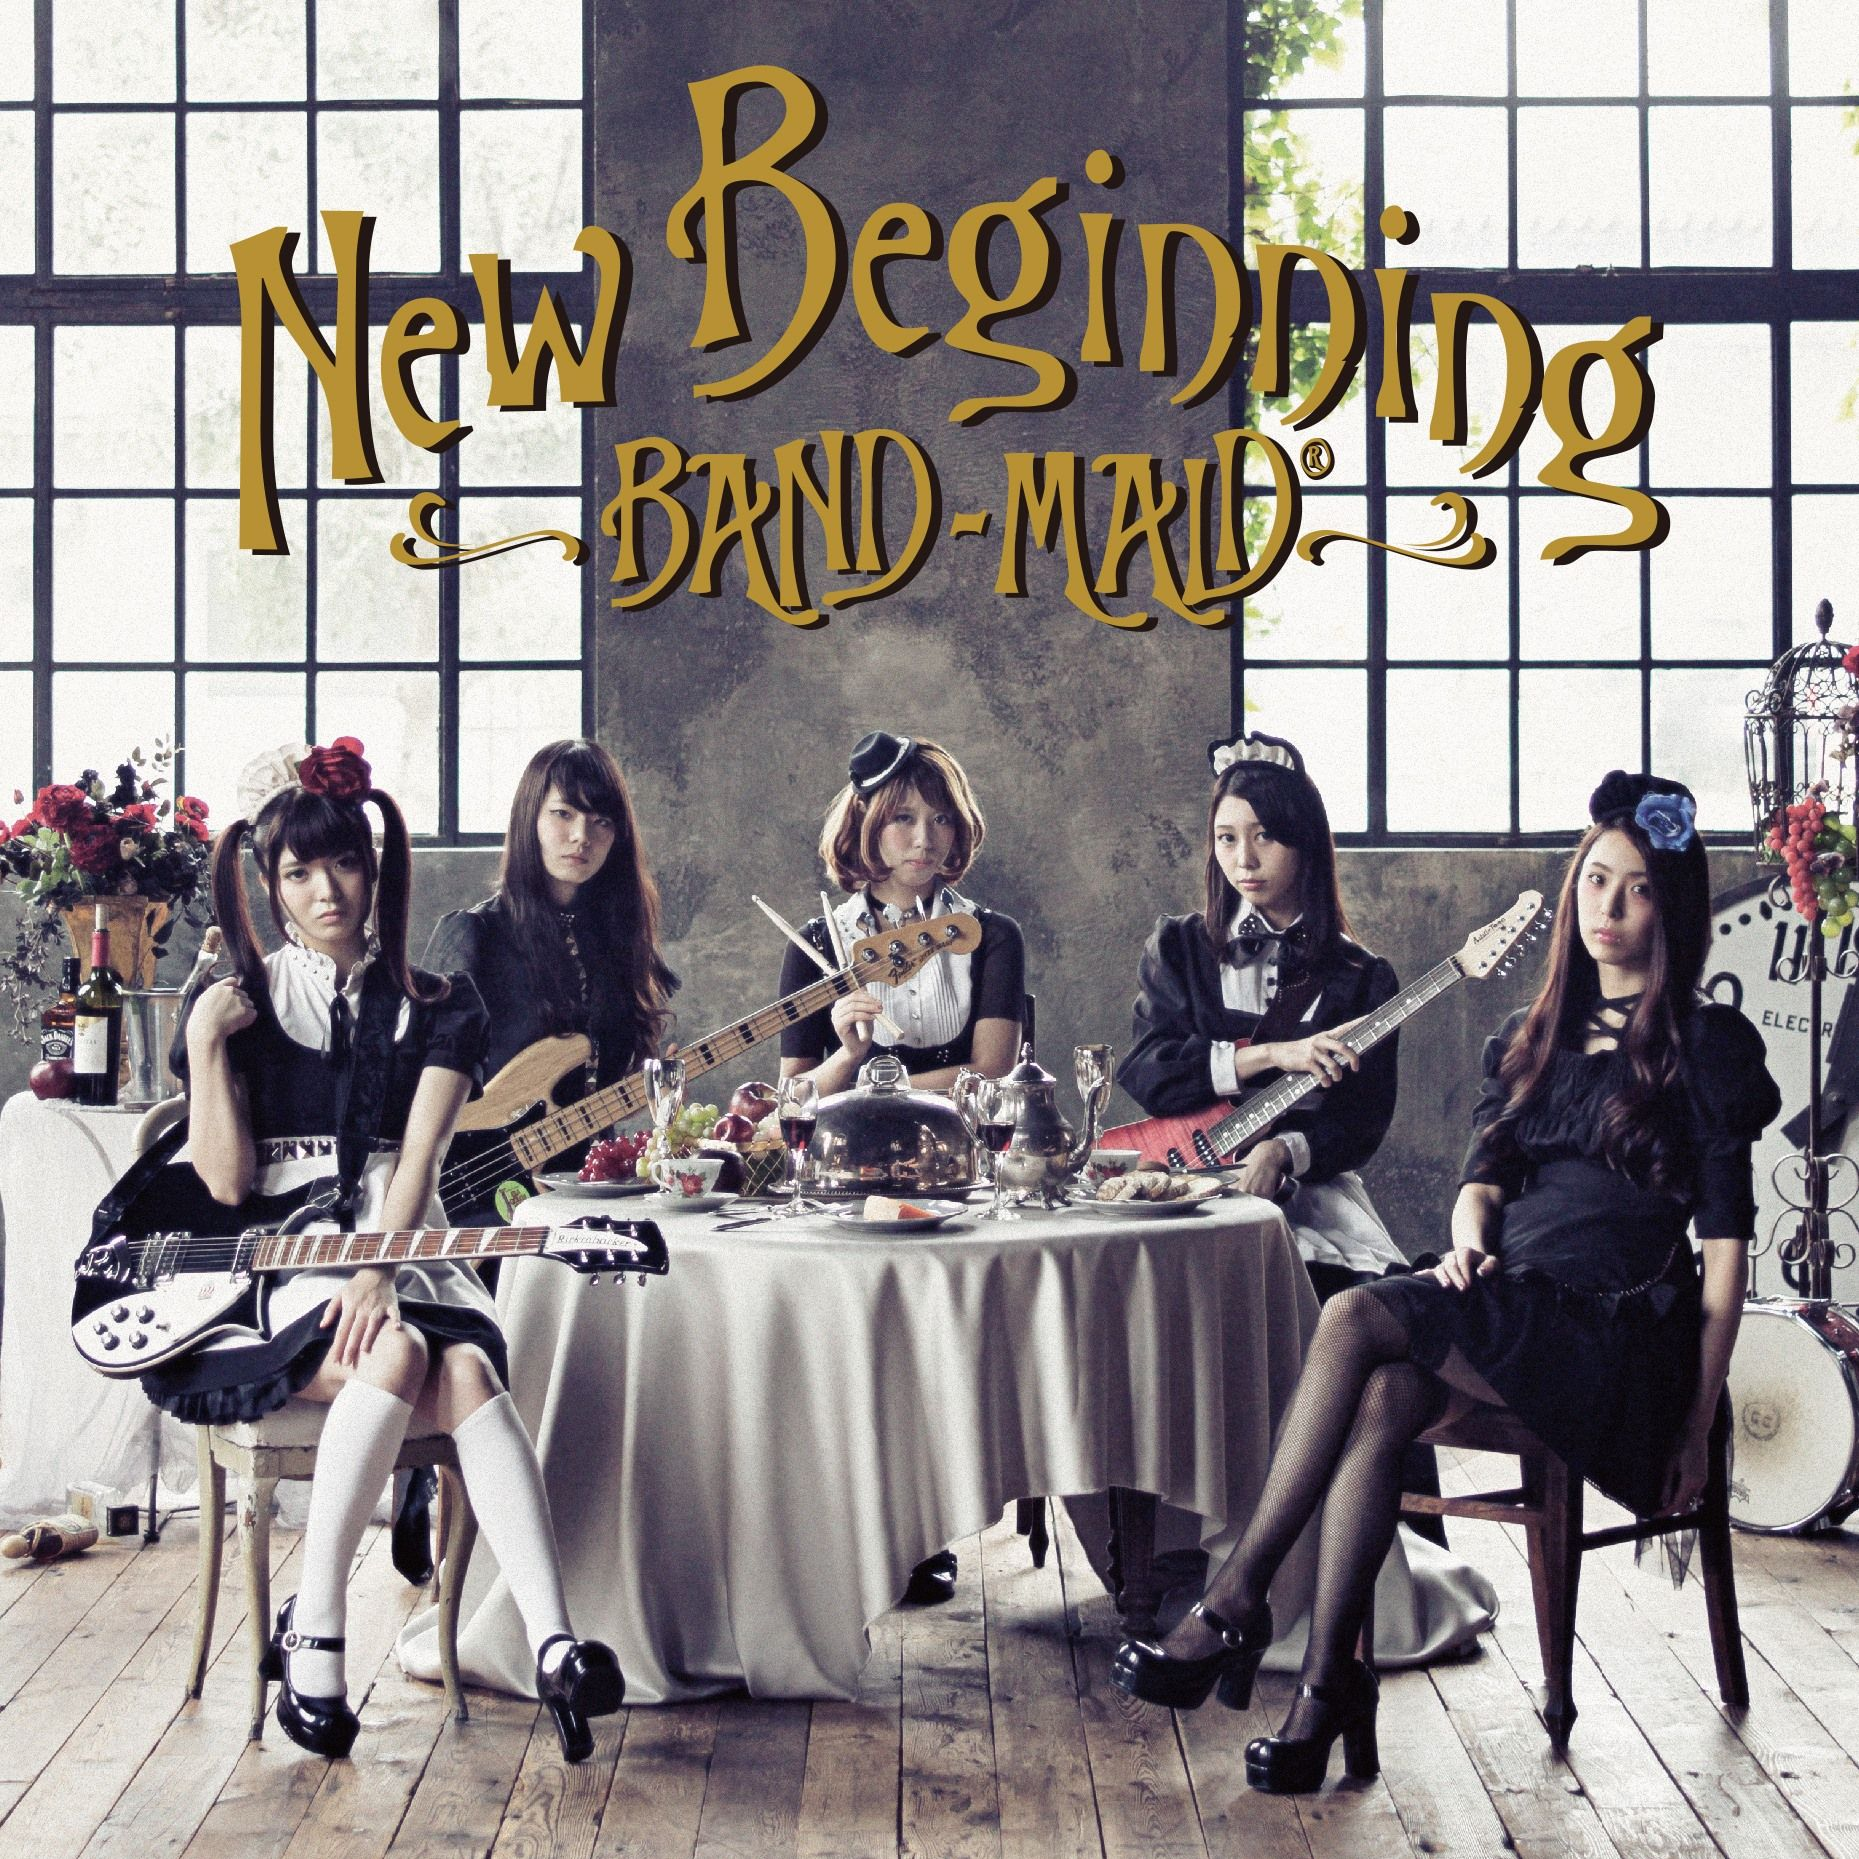 Band maid new beginning 2015 streaming on accuradio